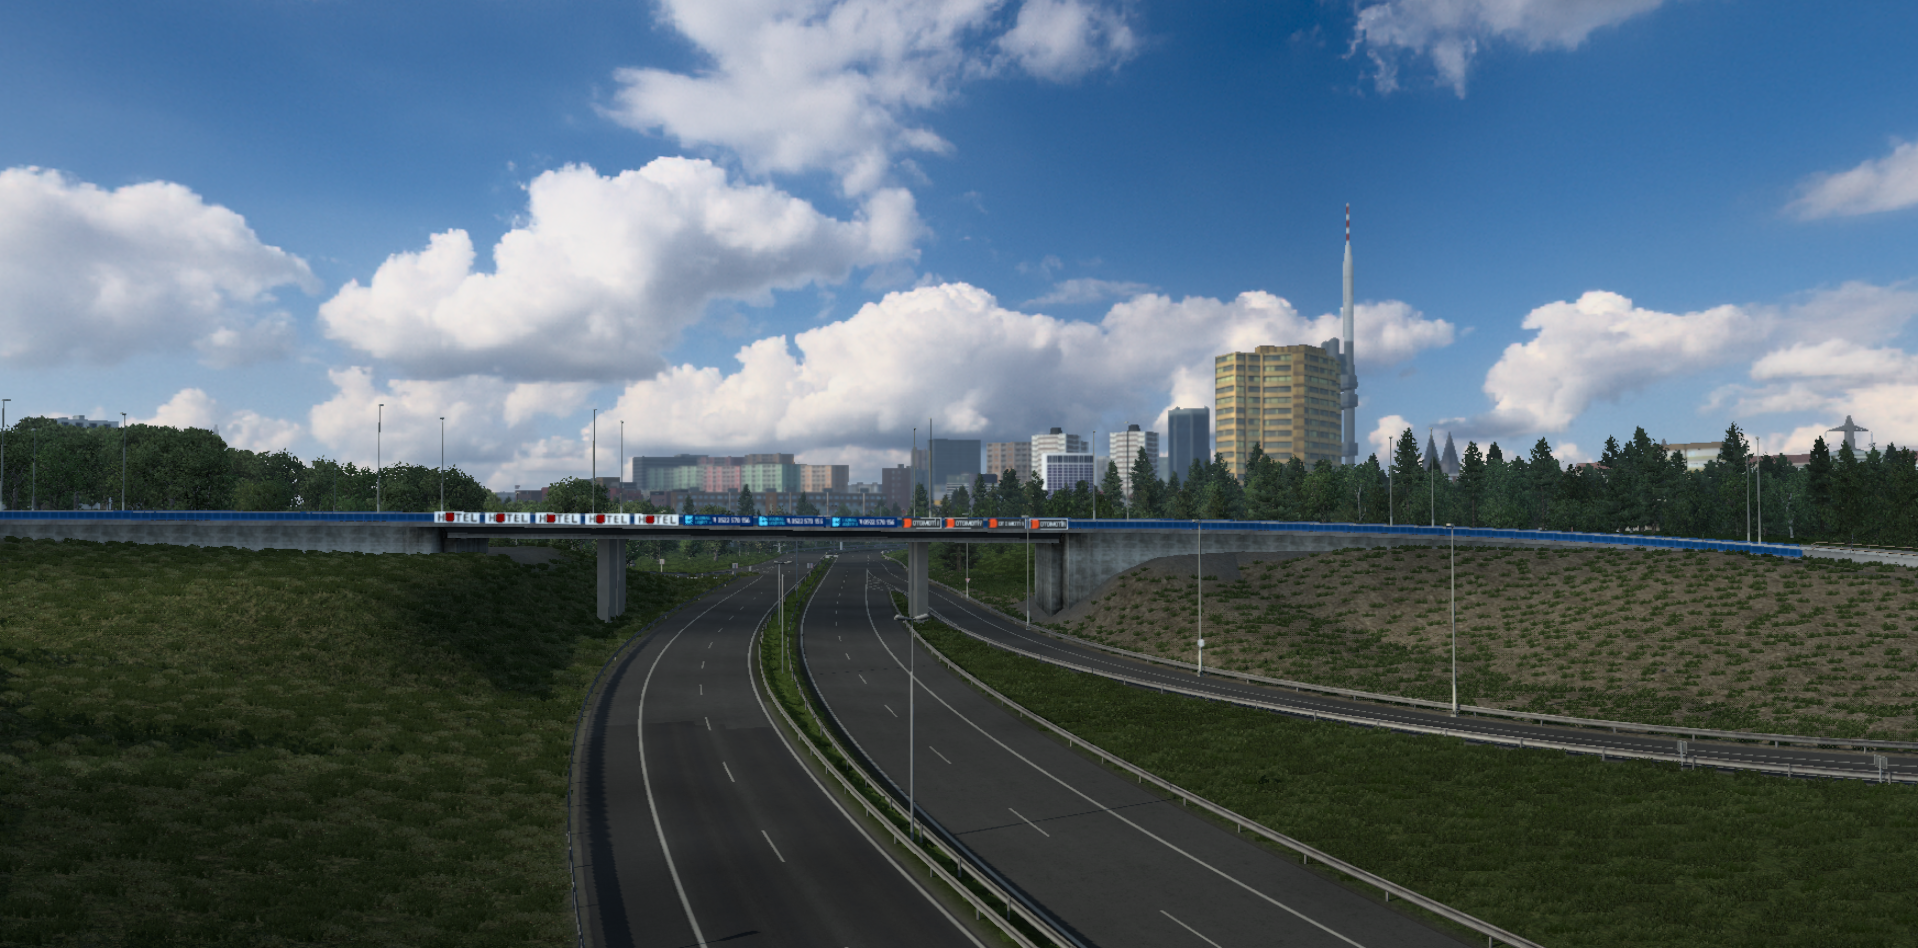 ets2_20210606_172302_00.png